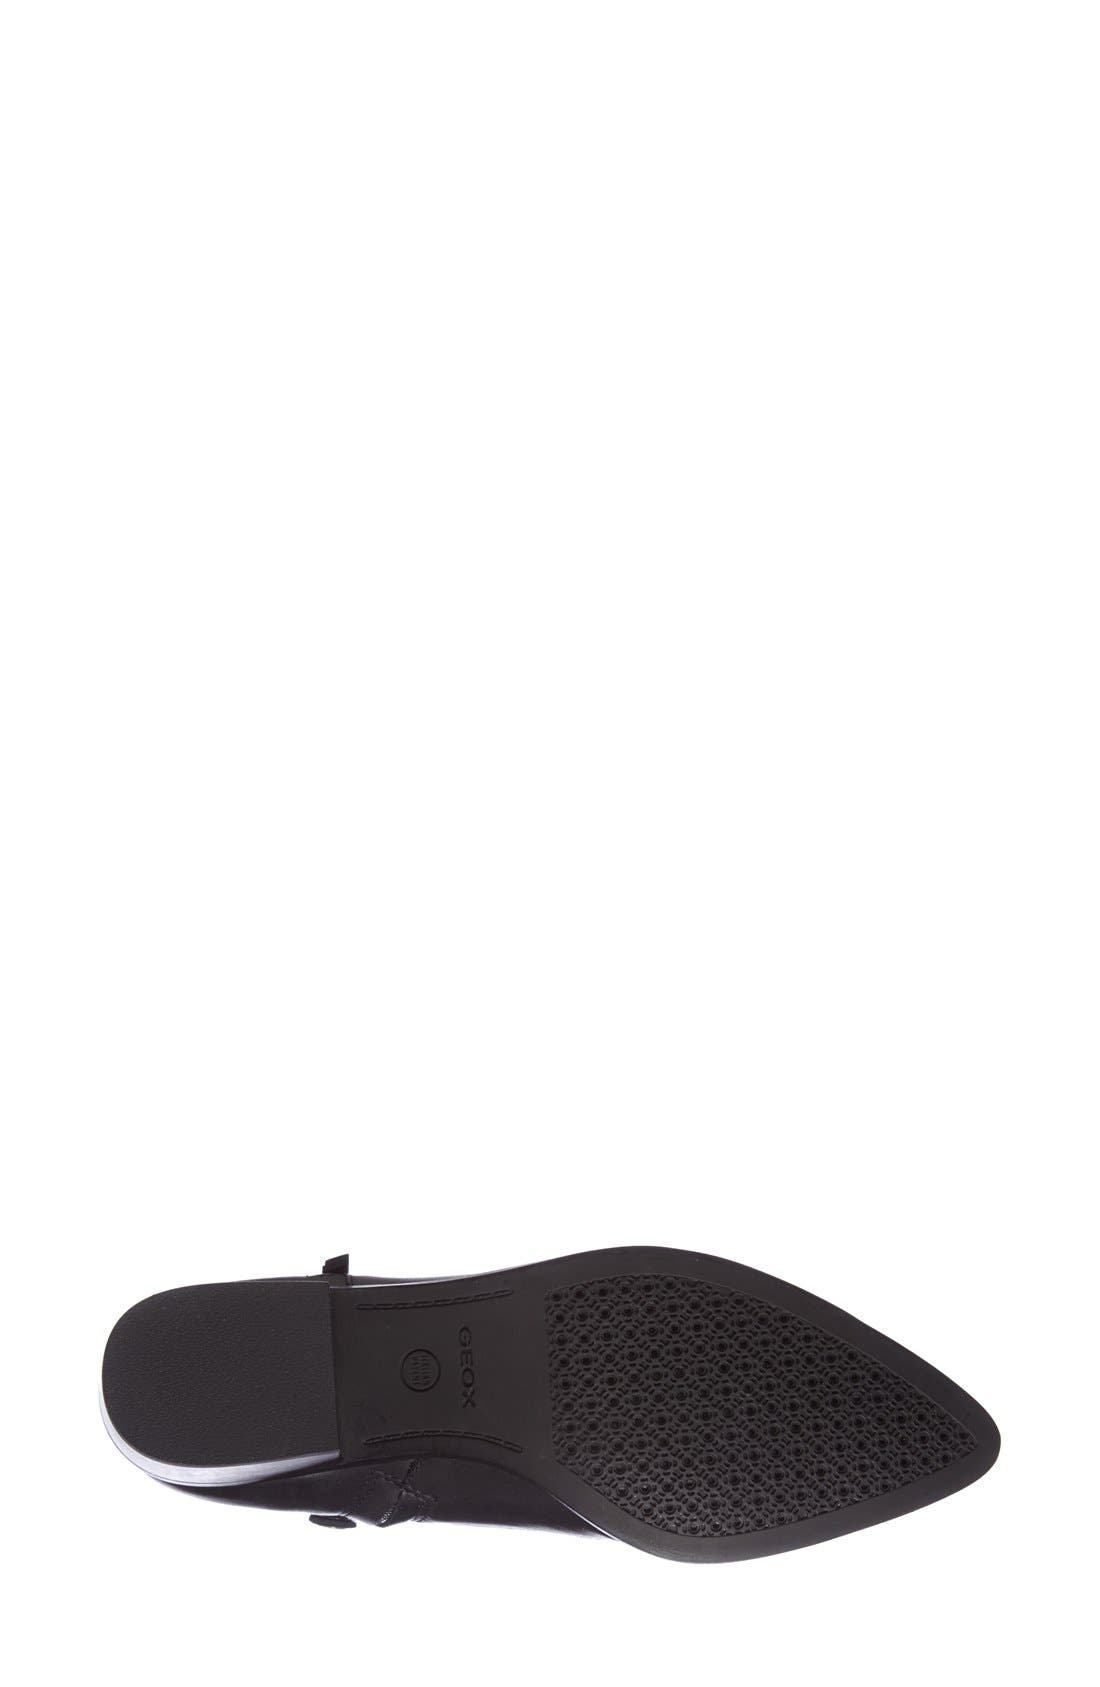 GEOX,                             'Lia' Ankle Boot,                             Alternate thumbnail 3, color,                             001